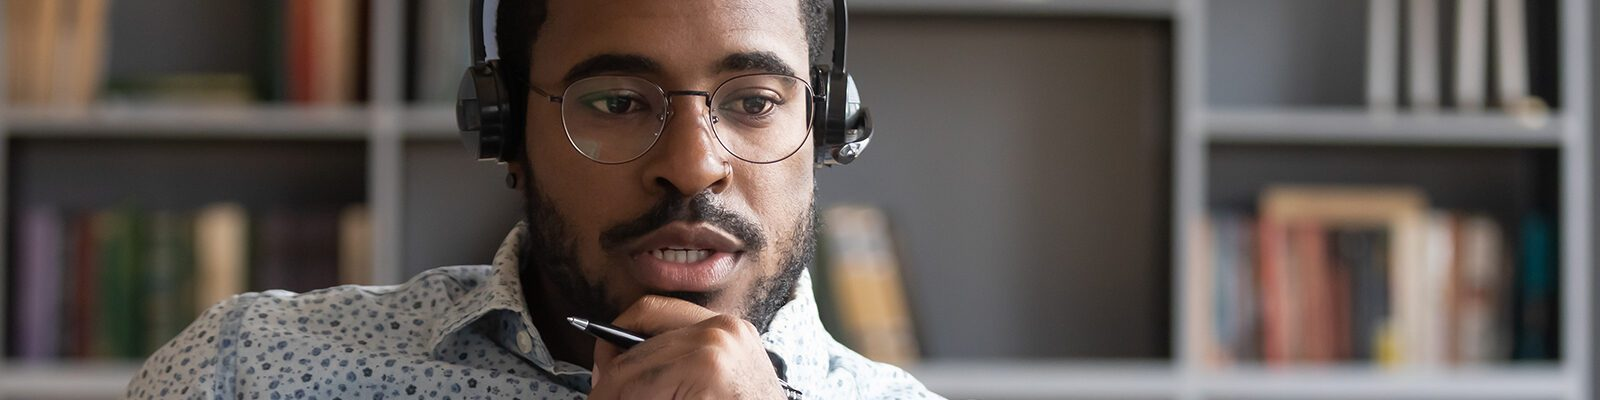 A man with headphones talks in a virtual meeting.